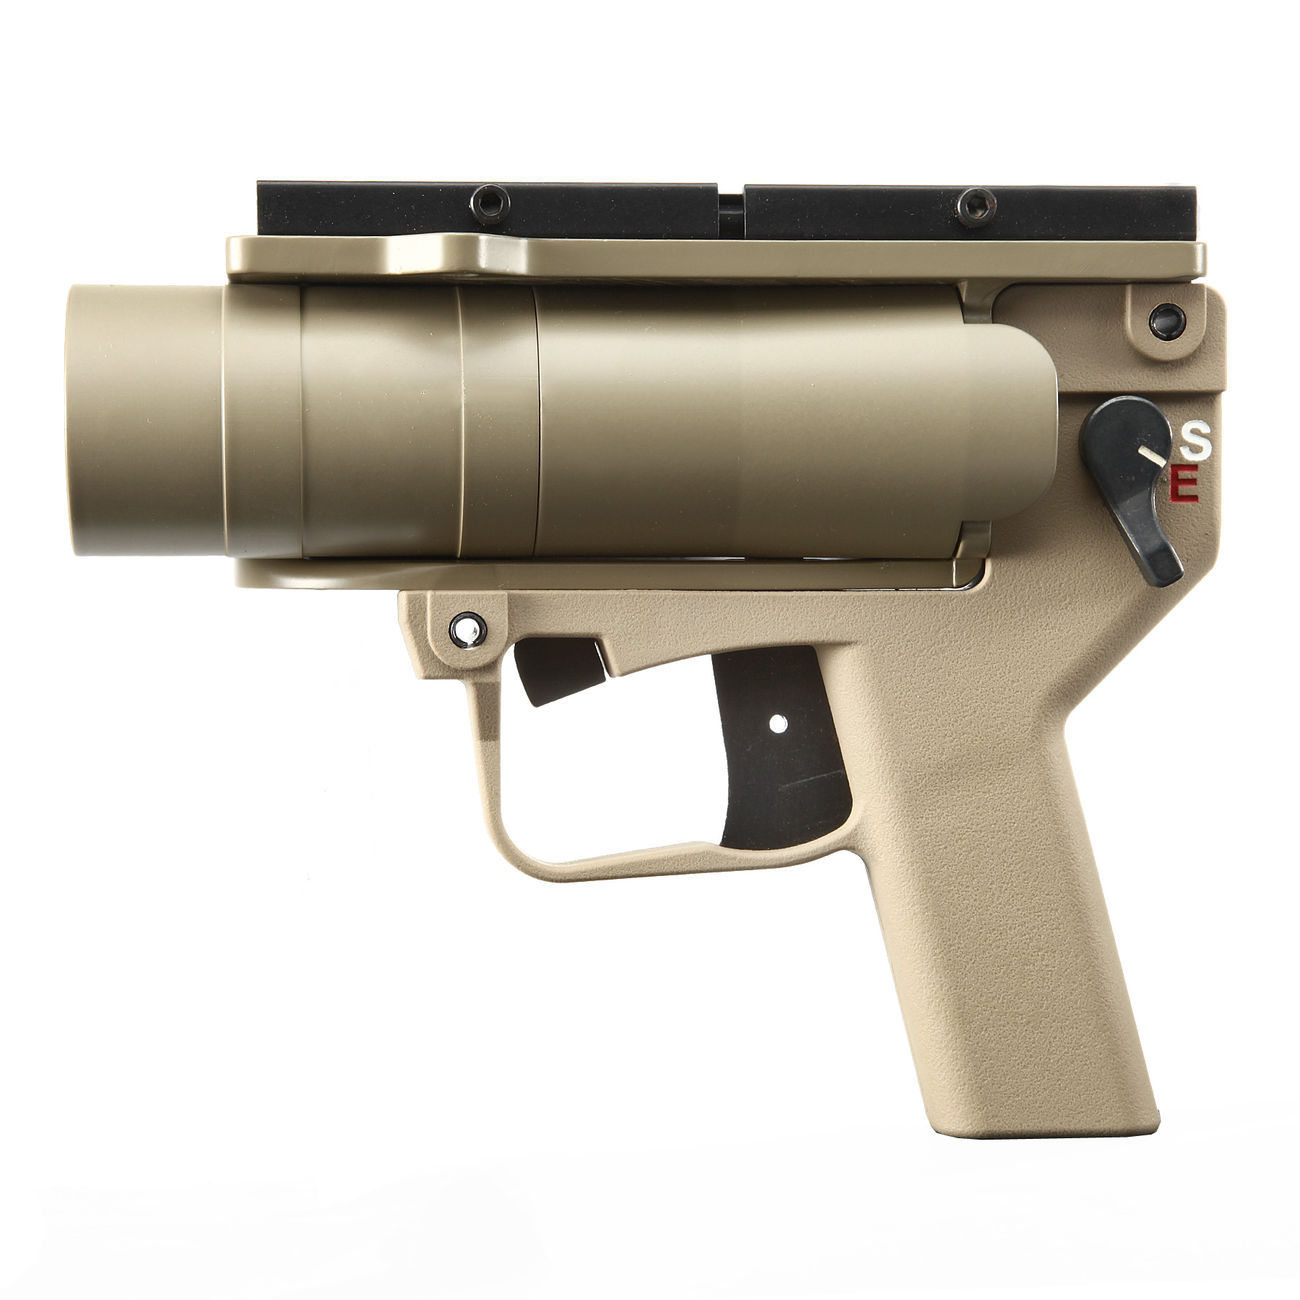 Mad Bull AGX 40mm Vollmetall Airsoft Pistolen-Launcher Tan 1